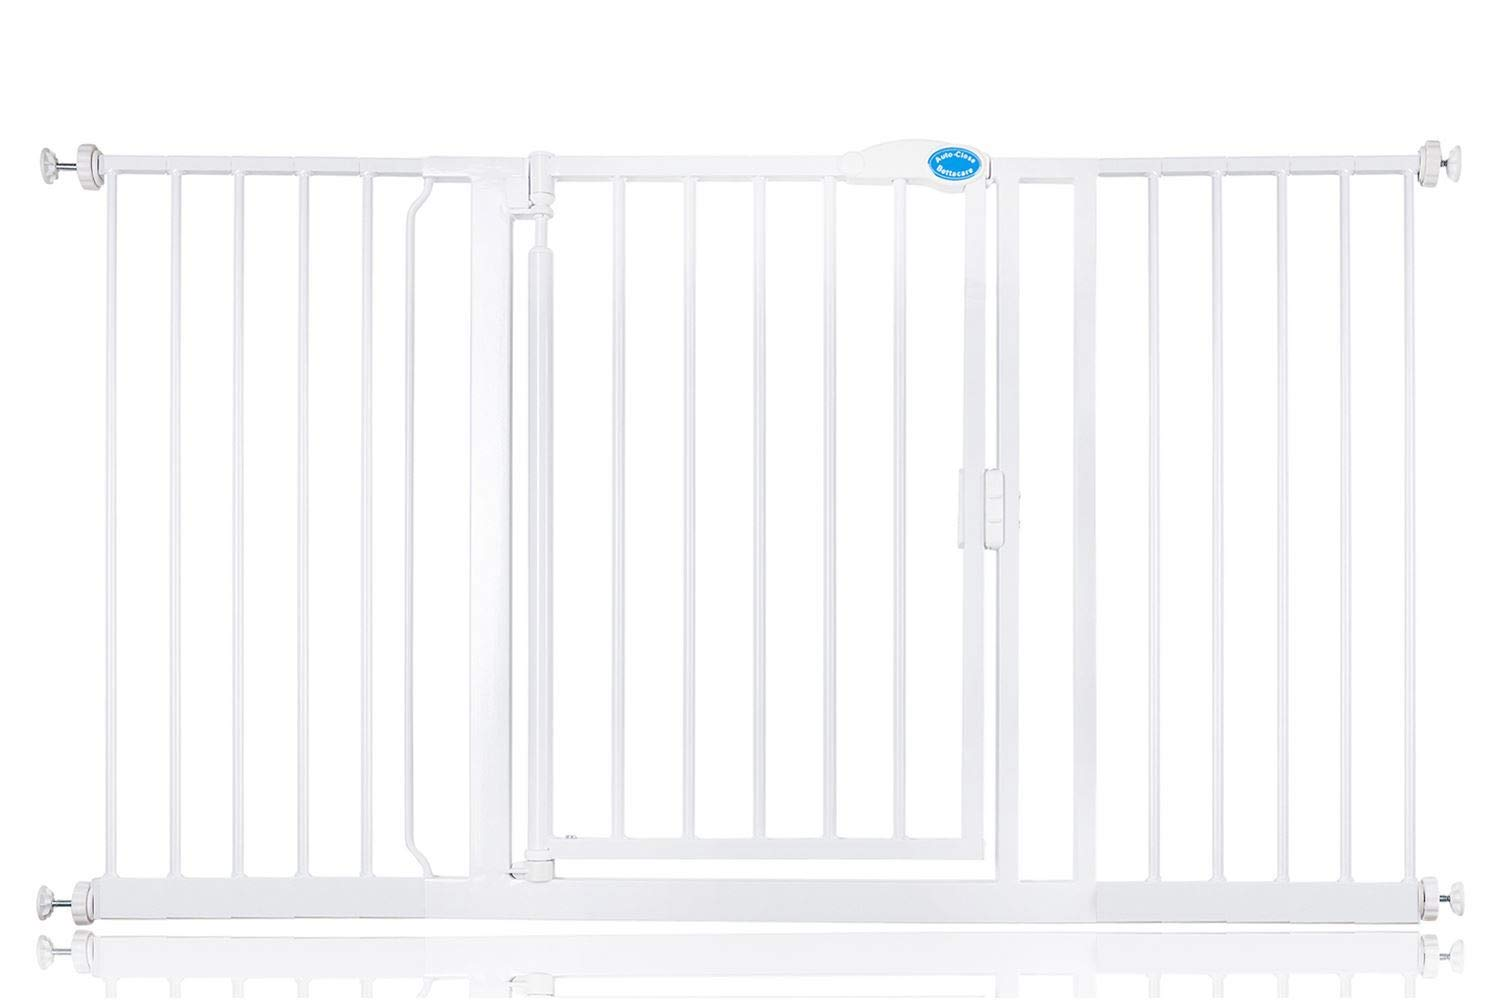 Bettacare Auto Close Pet Gate 75cm - 154cm Gate with Extensions (147cm - 154cm) Bettacare Pressure Fitted Two Way Opening (Widget on bottom bar can be adjusted to set gate opening towards or from user) Double Locking Mechanism 1